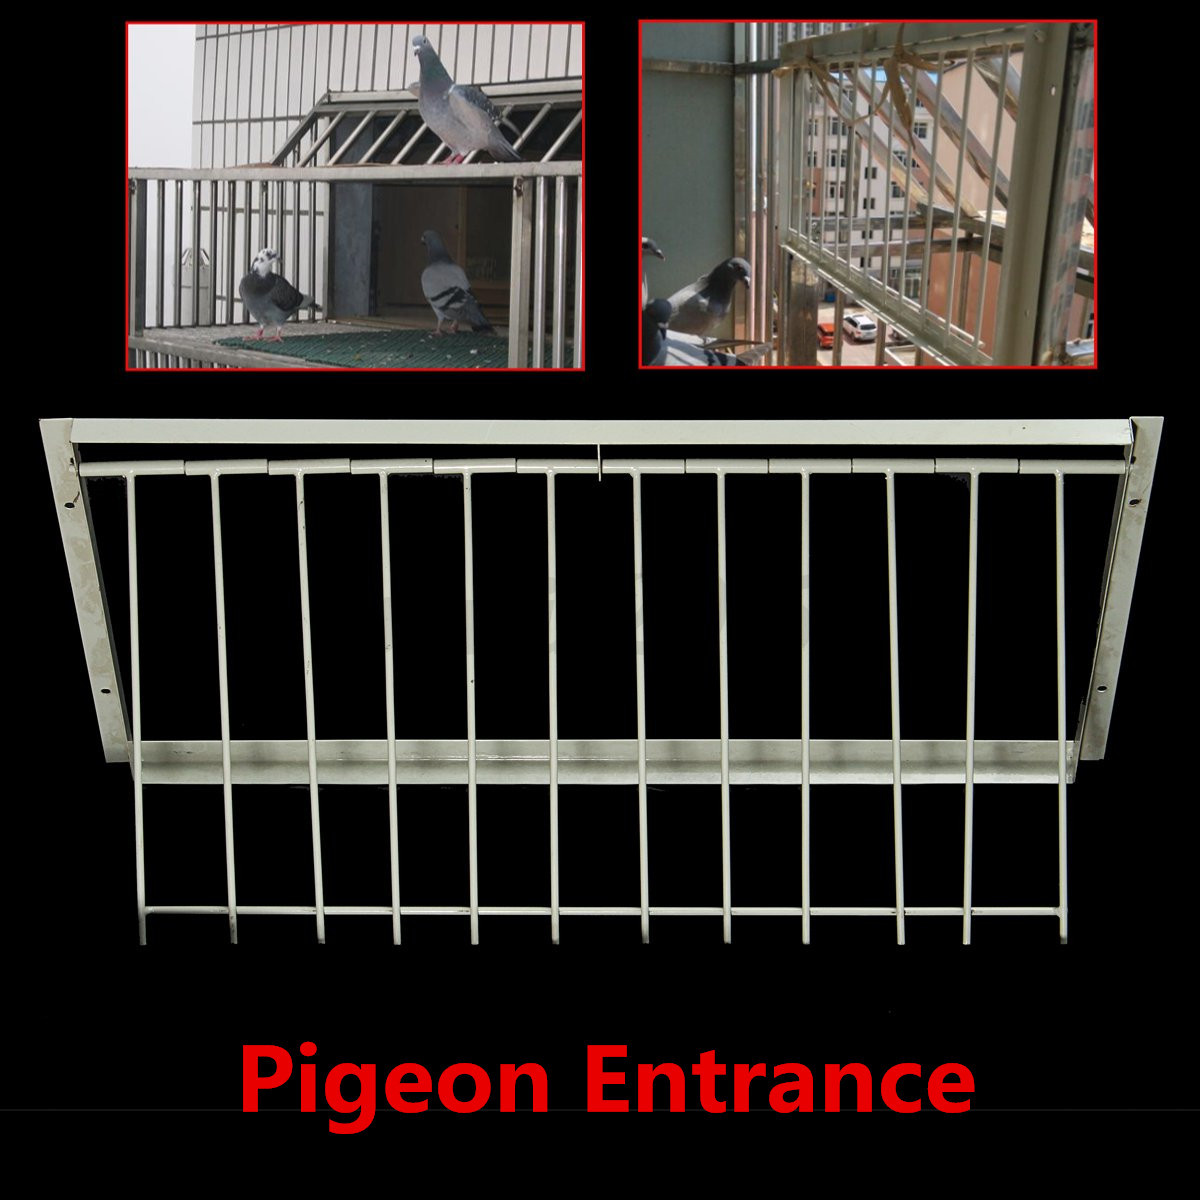 Wires Bars Frame Racing Pigeon Entrance Fantail Tumbler Loft Bird Supply. Source .